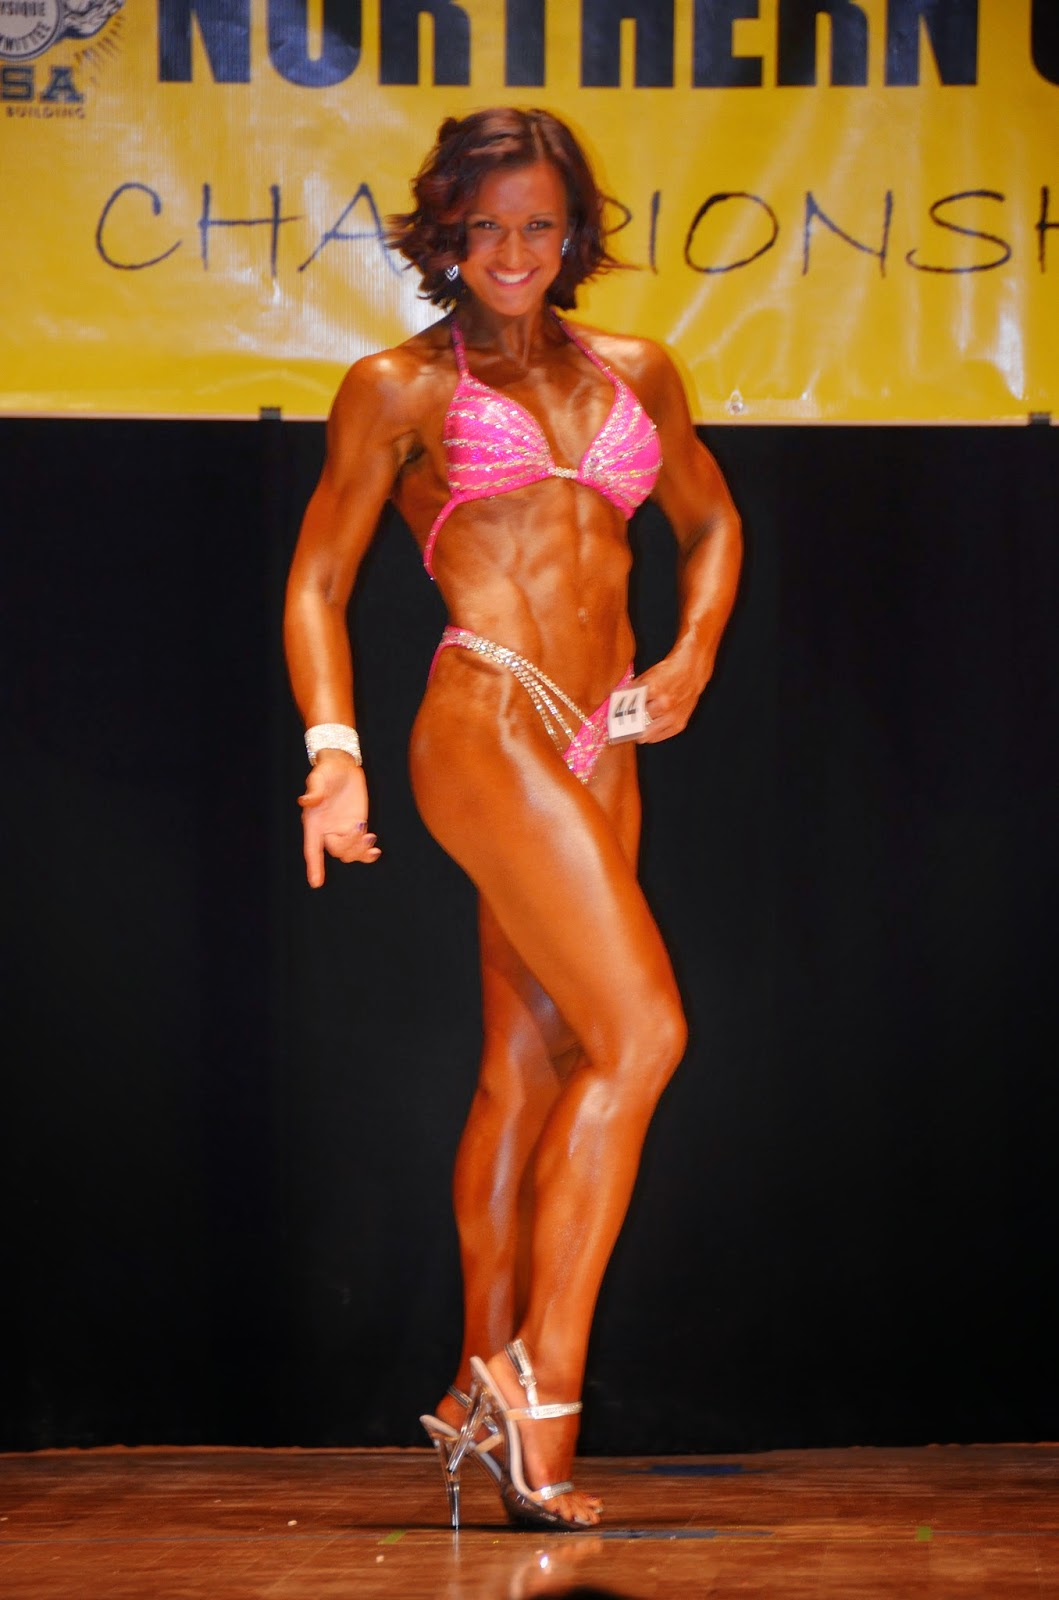 Deidra Penrose, NPC Figure Competitor, Figure Competition prep, health and fitness coach, beachbody coach Harrisburg, top fitness coach, fitness mom, family fitness, Natural Figure Competitor, fitness journey, weight loss journey, fitness motivation, fitness transformation, successful fitness coach, team beachbody, 7 star elite beachbody coach,